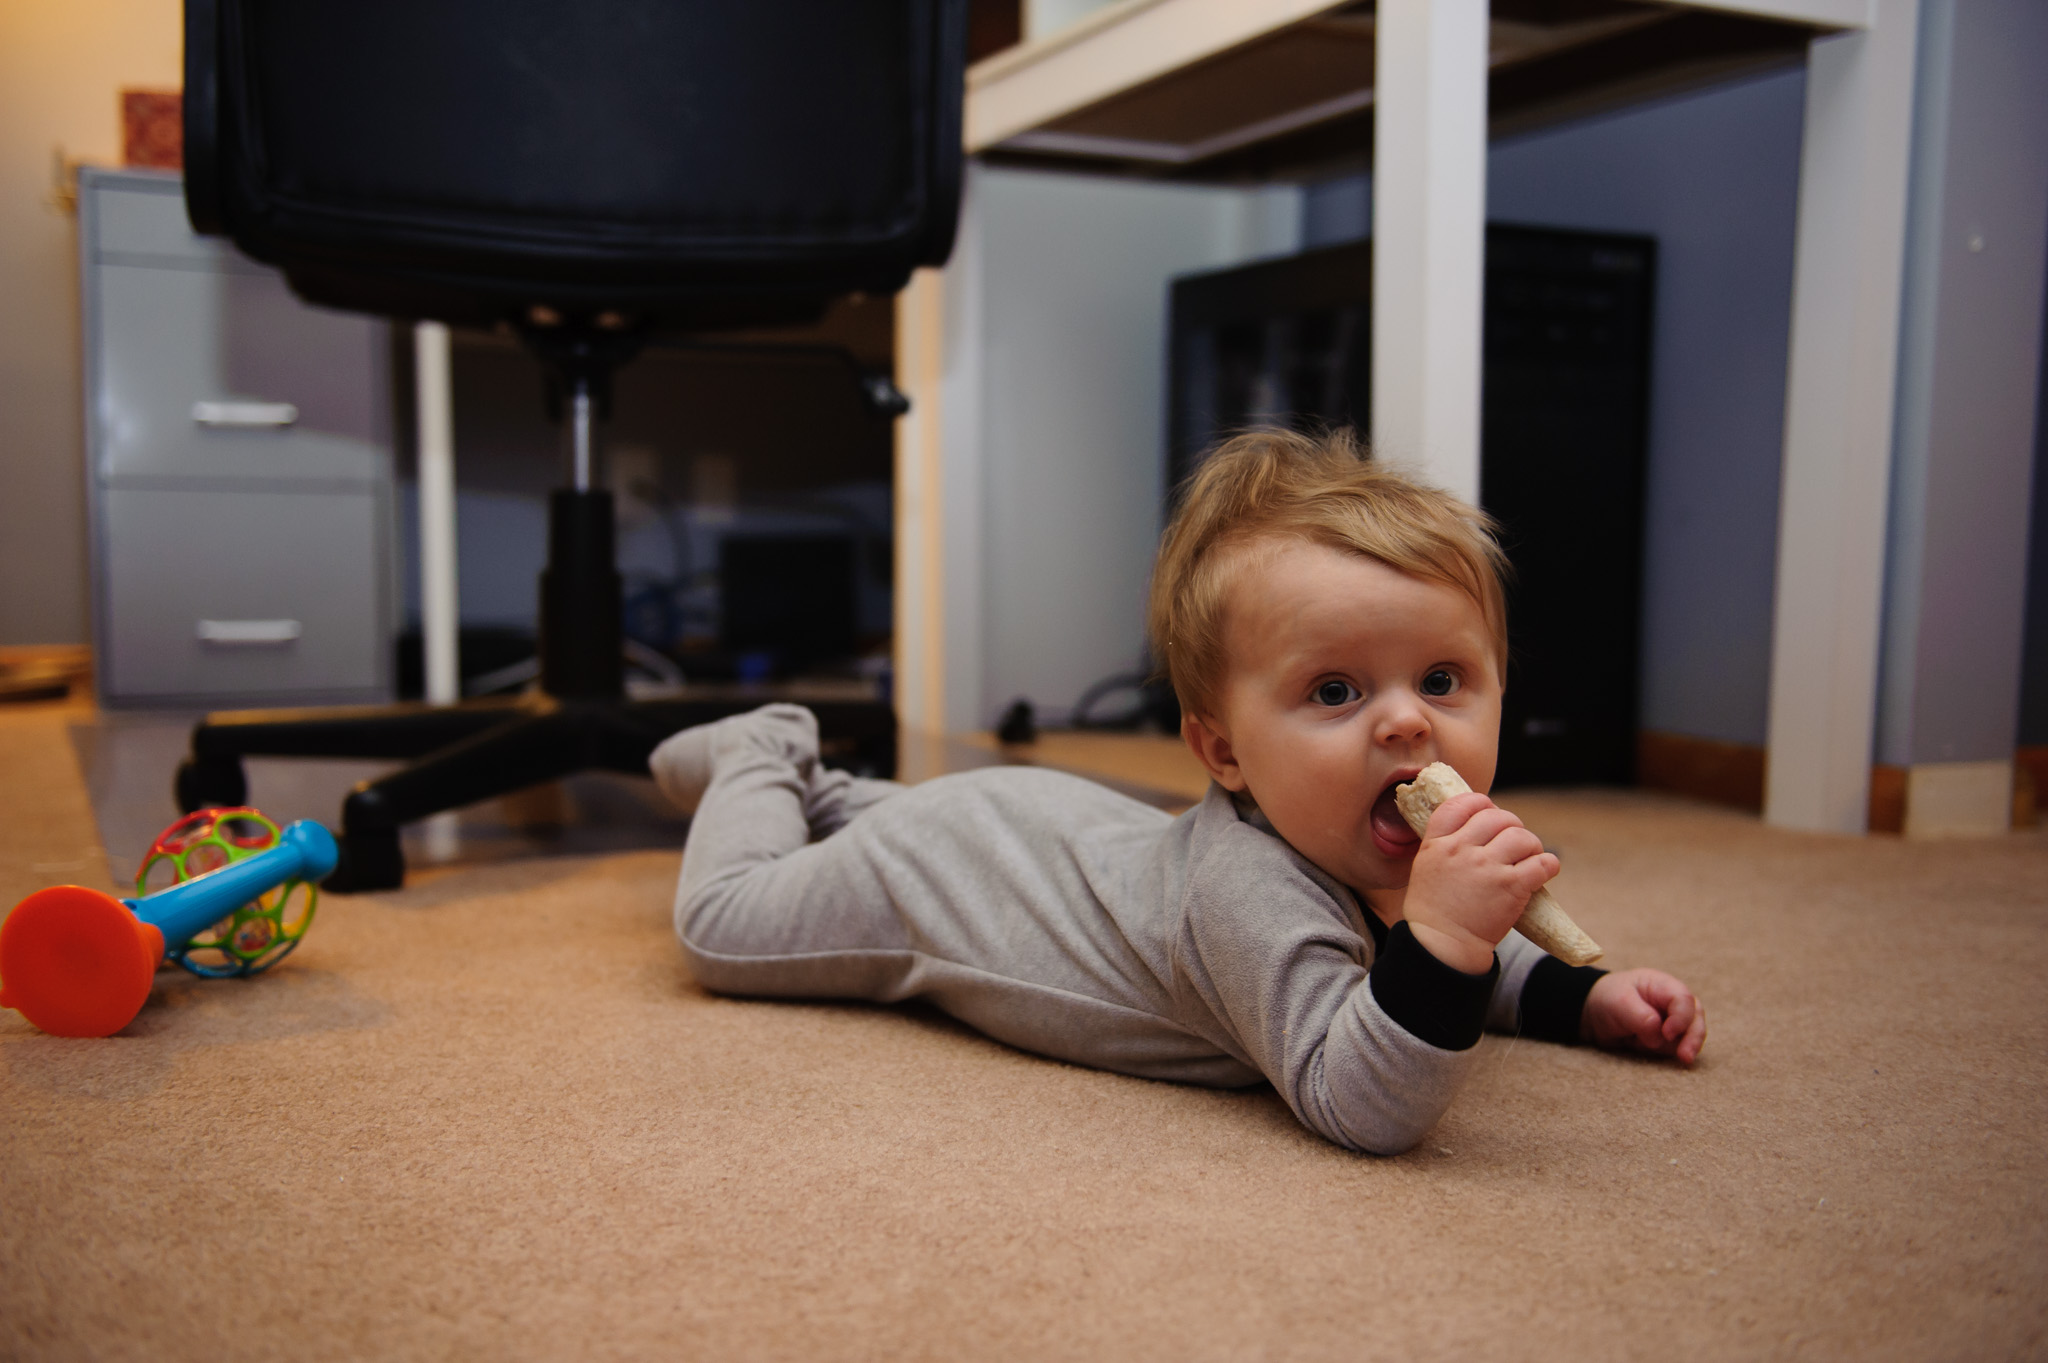 01 Jan 2017 | This little guy is just about 8 months old, rolling all over the place, and finding all of the things he shouldn't eat to put in his mouth. Sometimes that happens.